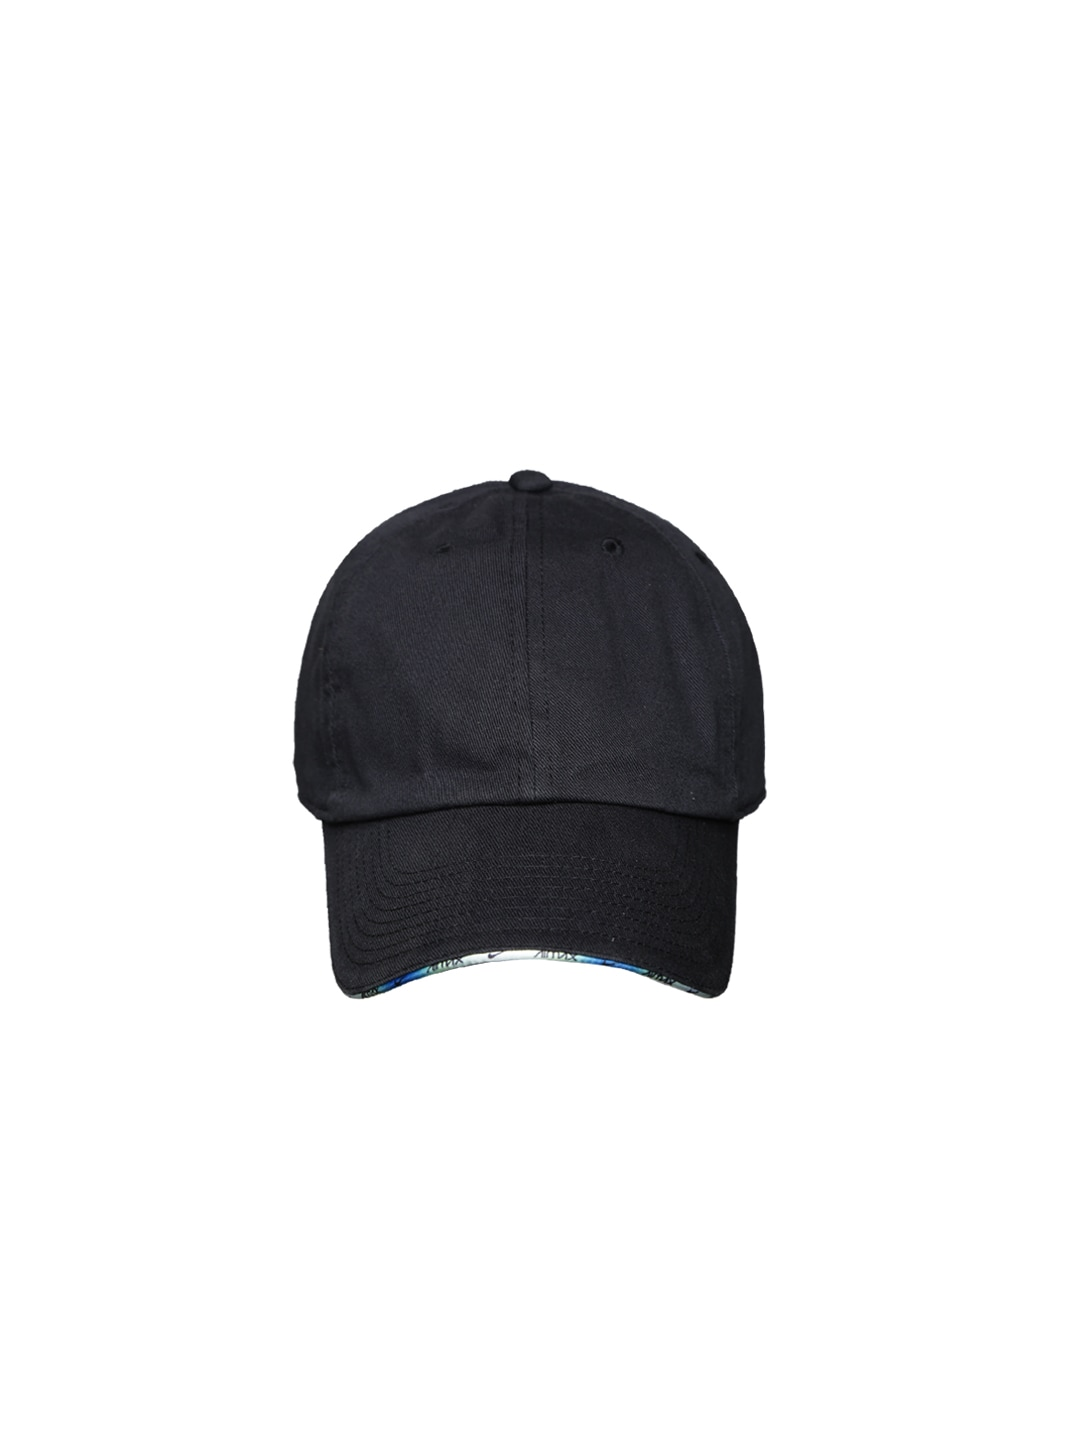 fa496342bfa Black Caps - Buy Black Cap Online   Best Price